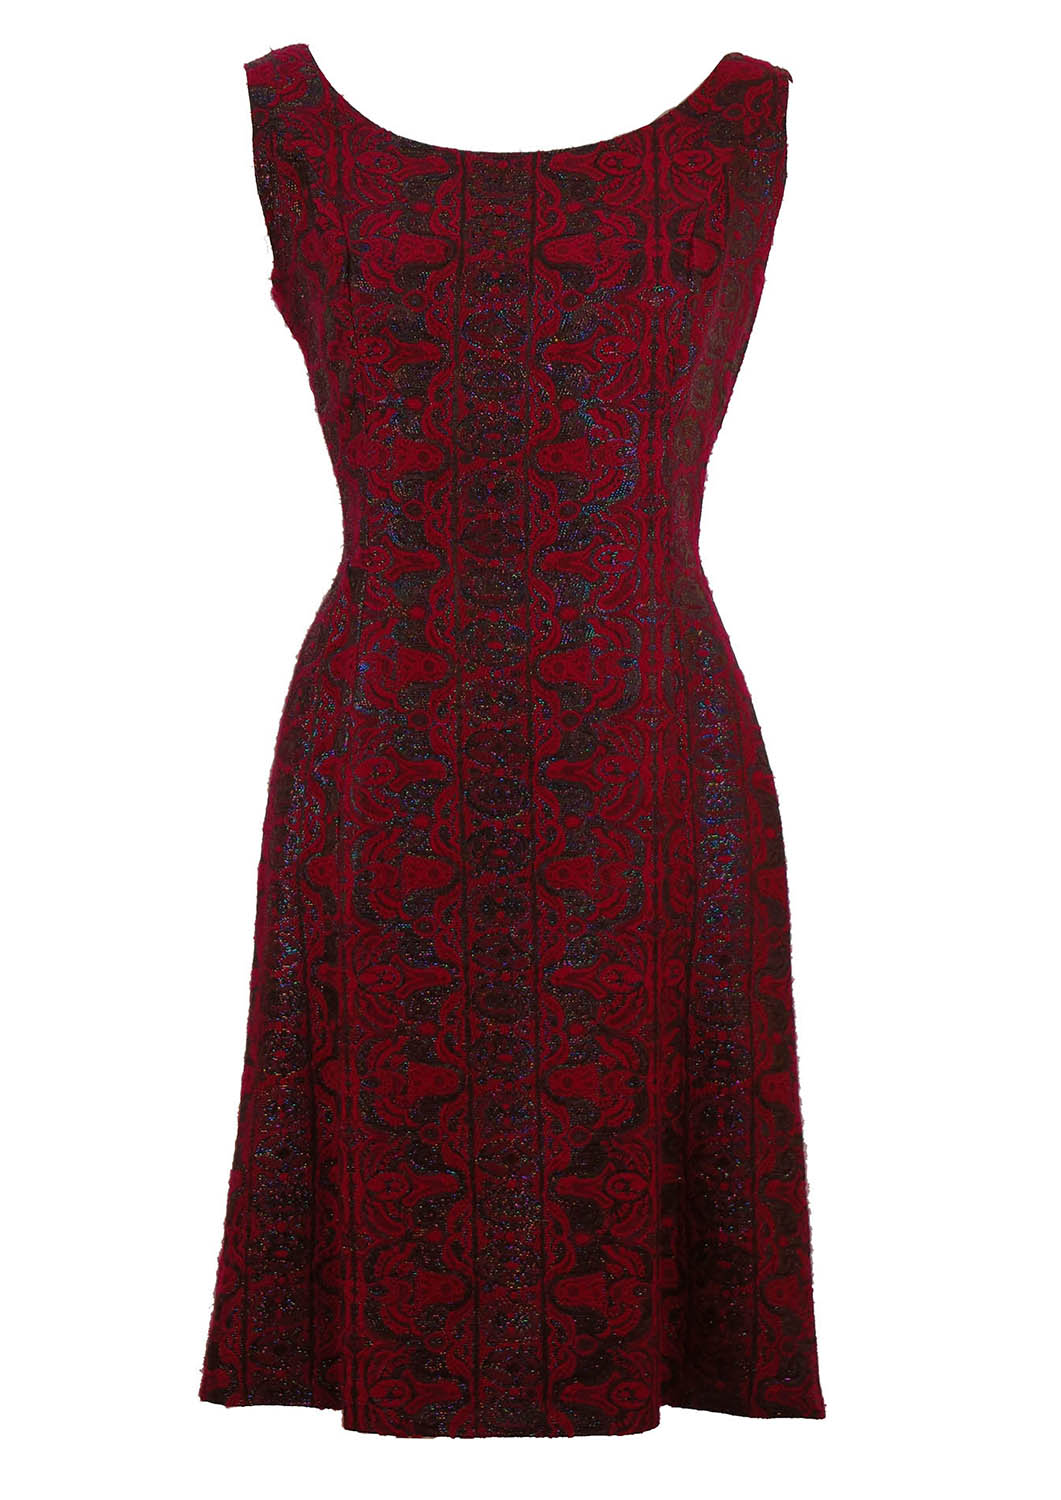 Vintage 1950's Brocade Party Dress – M – Reign Vintage